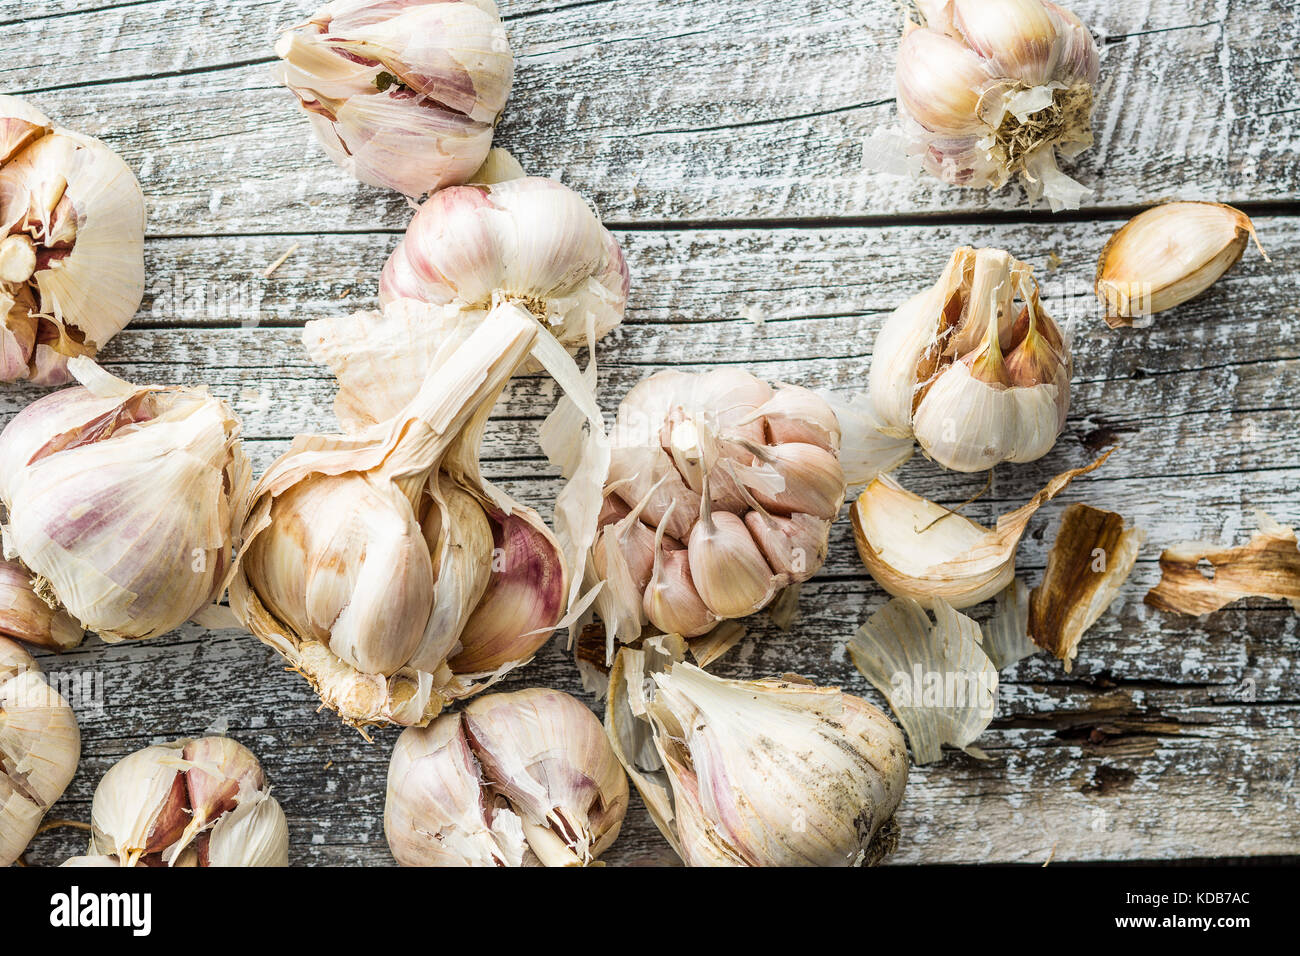 Fresh healthy garlic on old wooden table. Top view. - Stock Image